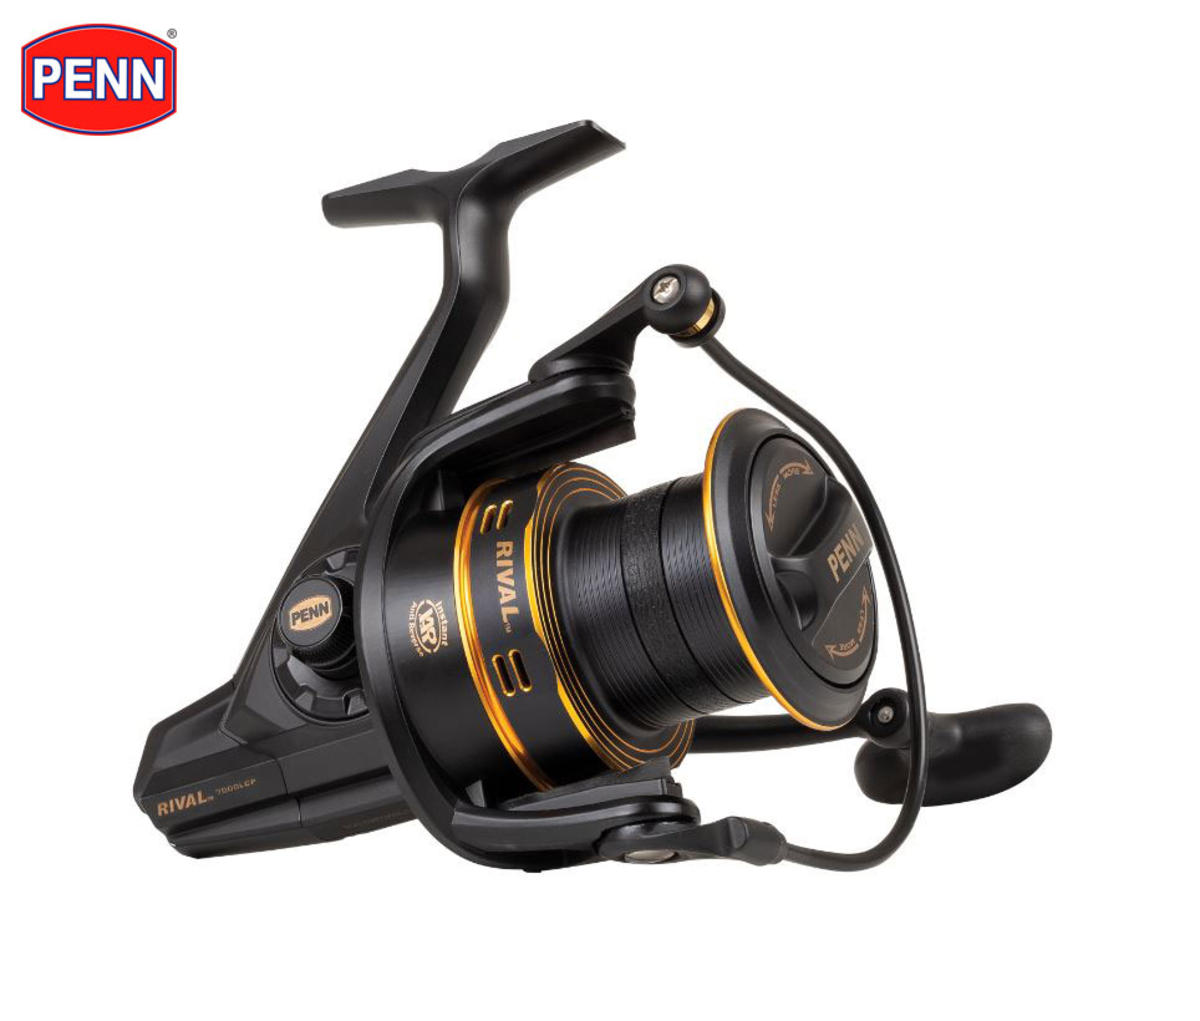 New PENN Rival Longcast Gold Surf / Carp Casting Spinning Reel - Fixed Spool